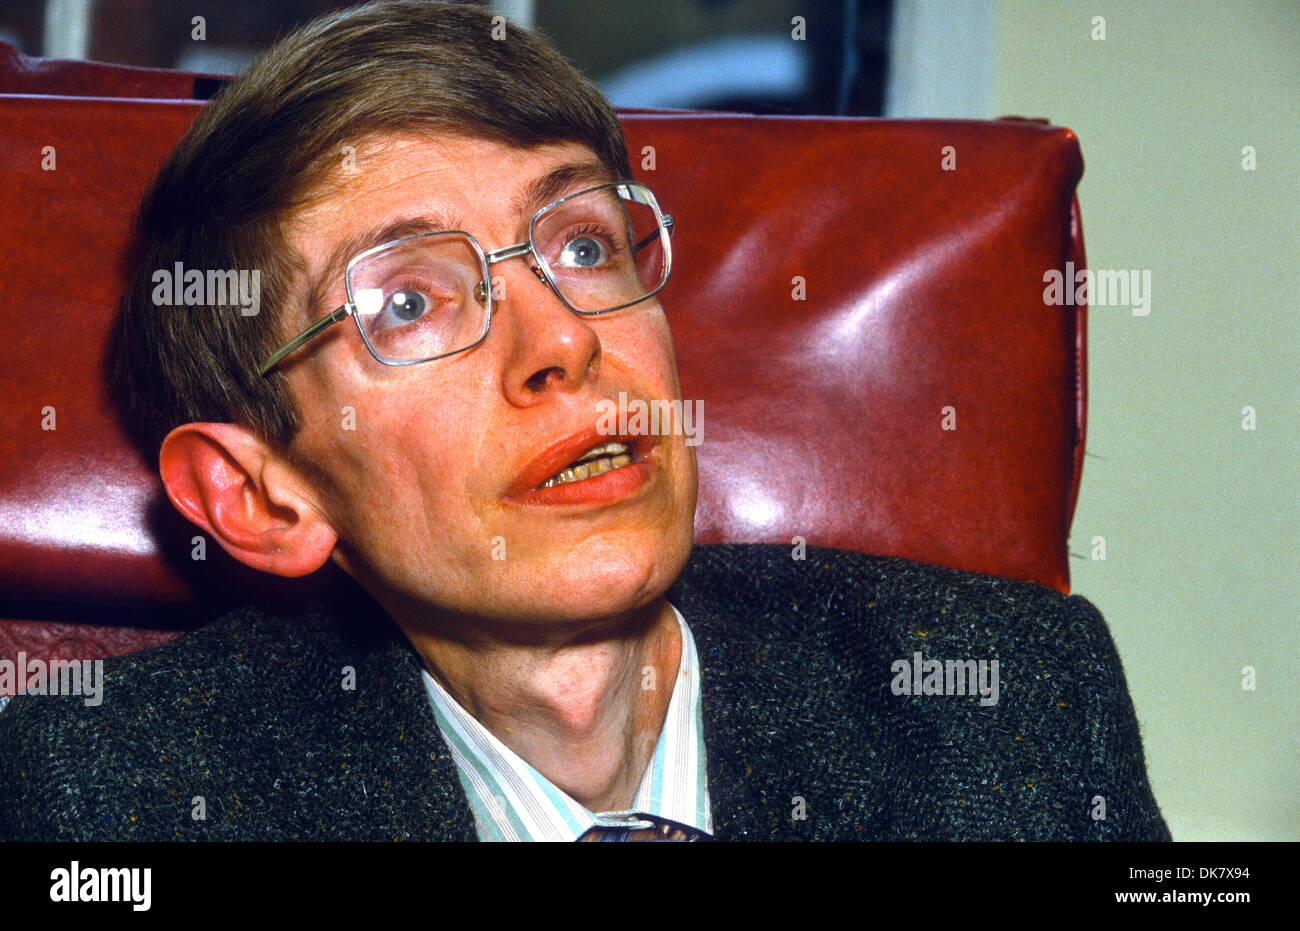 Stephen William Hawking CH CBE FRS FRSA is an English theoretical physicist, cosmologist and author. - Stock Image